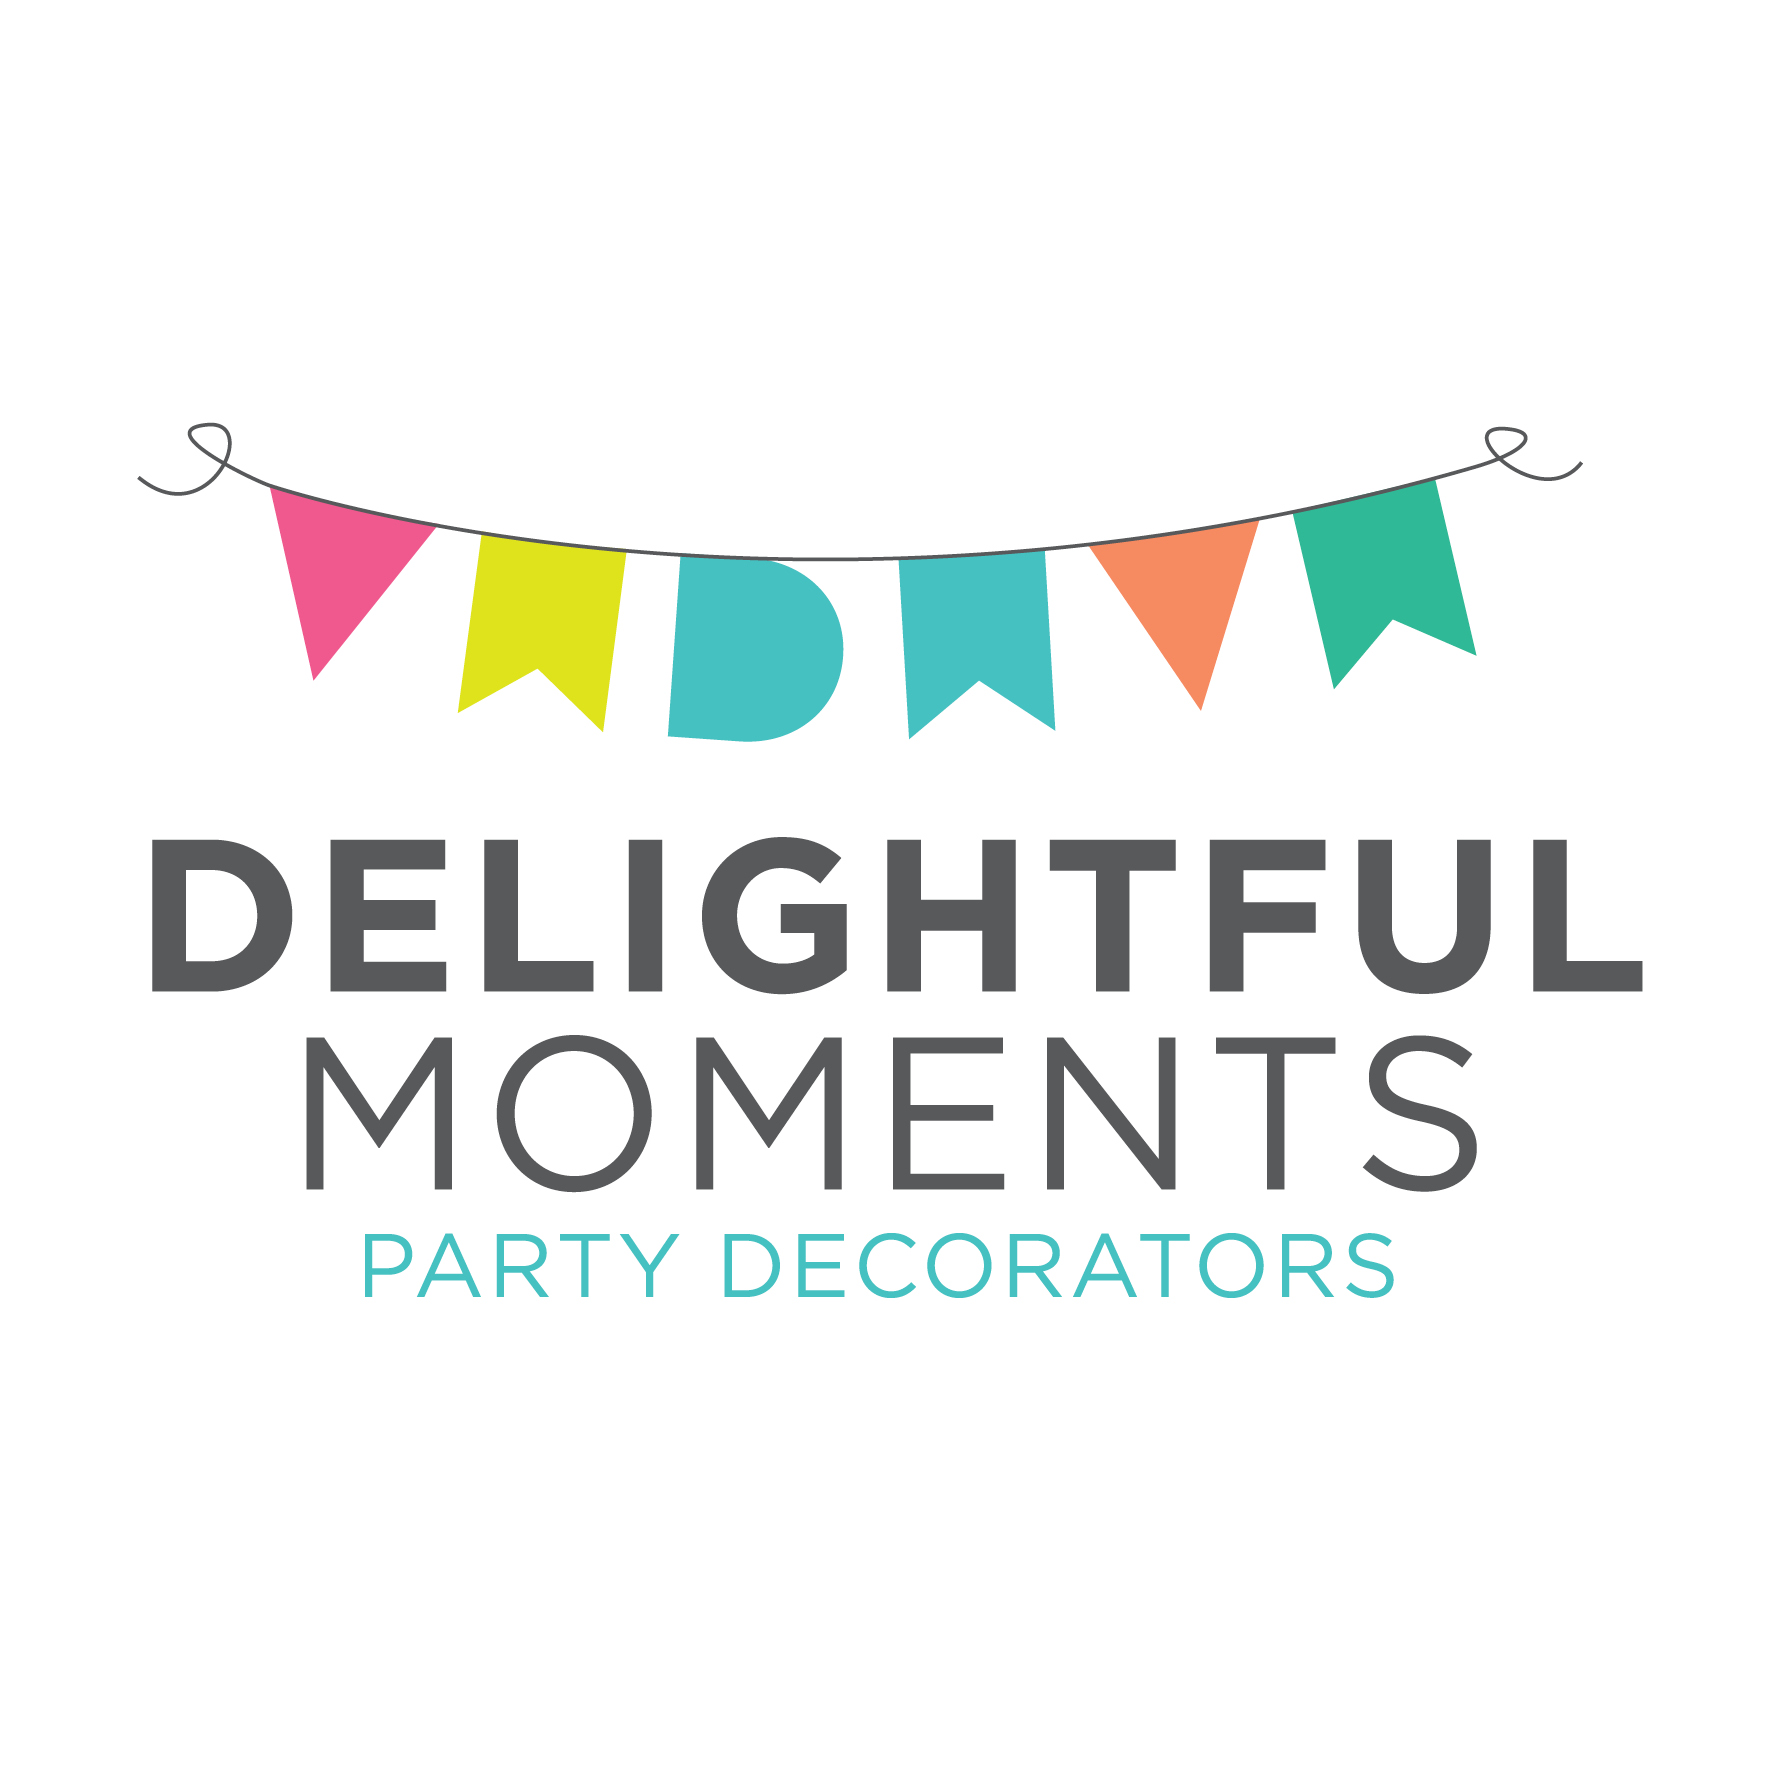 Delightful Moments